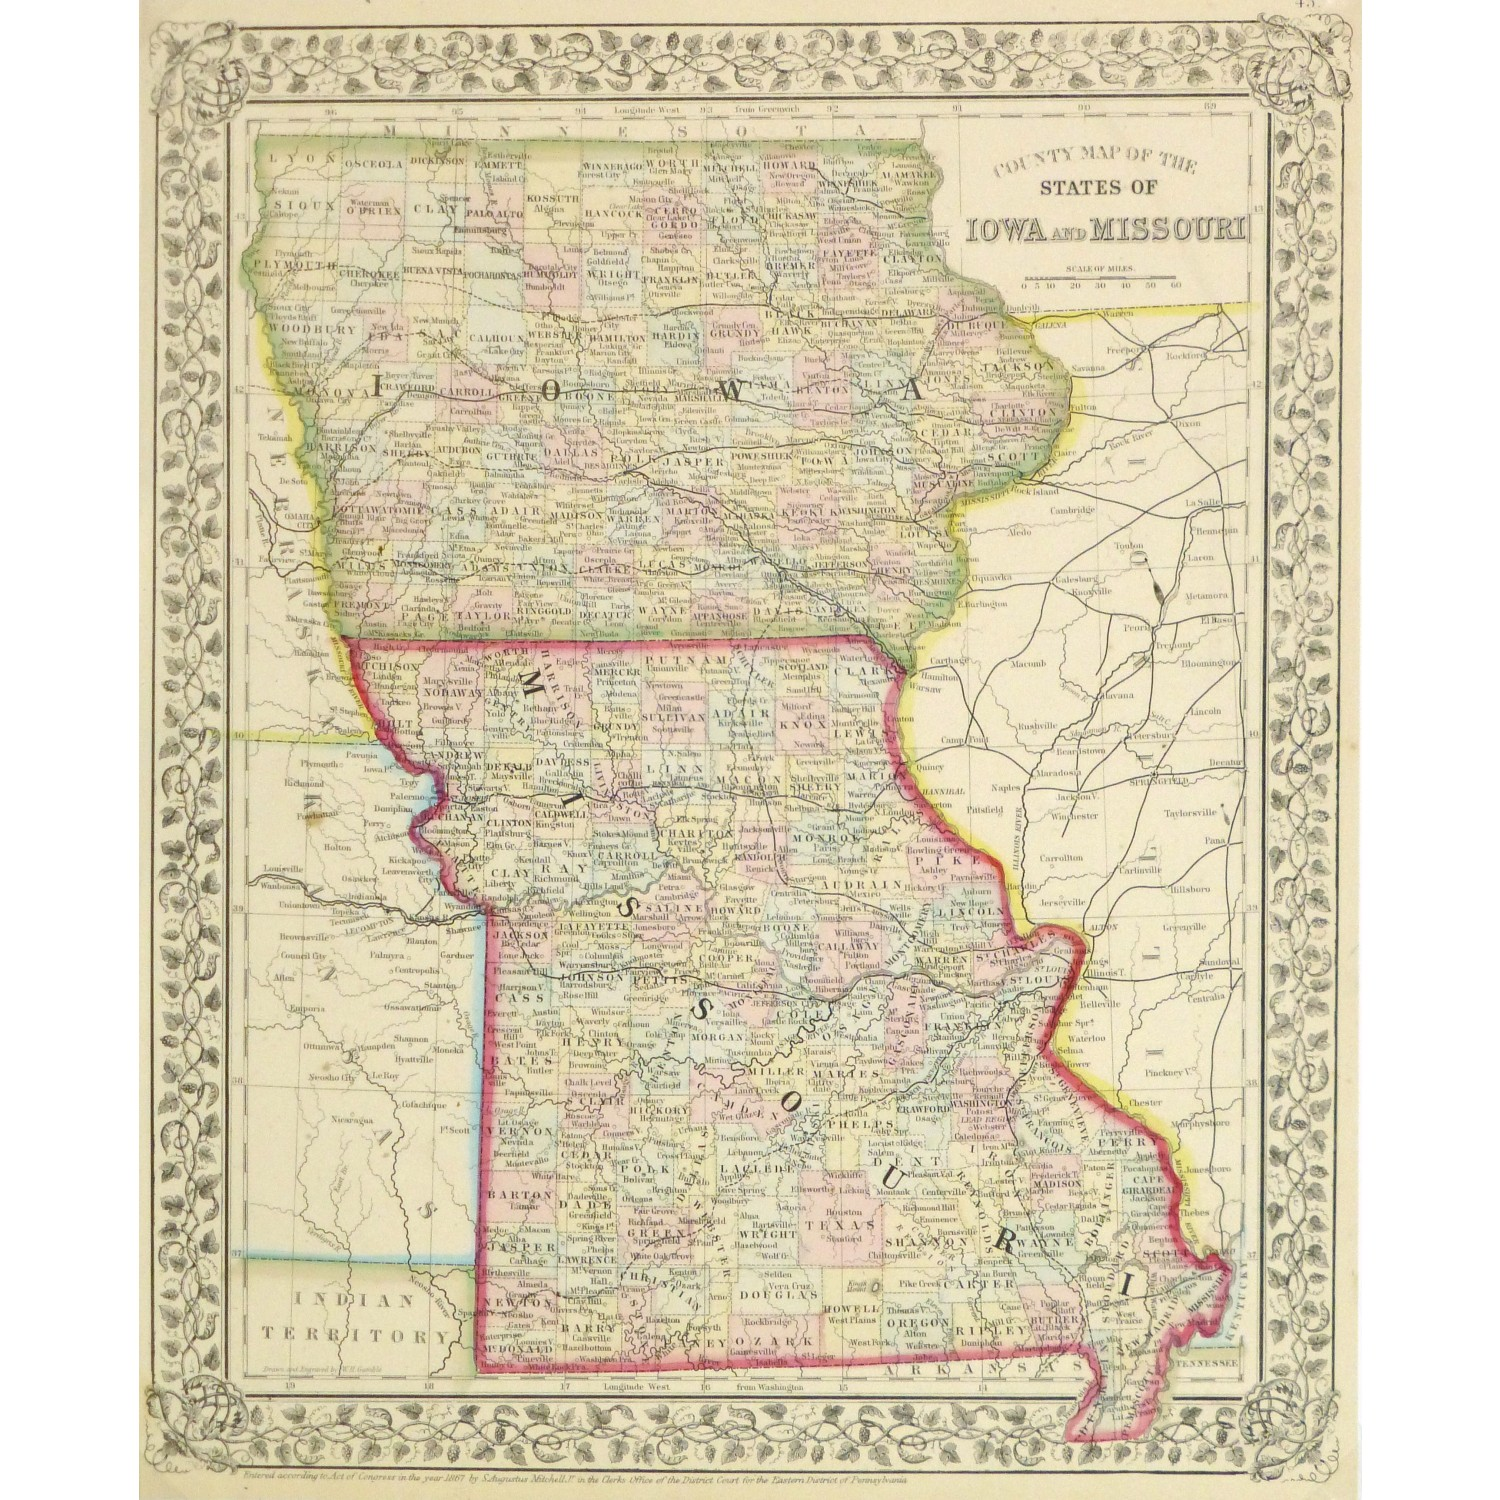 Original Antique Map Iowa and Missouri 9264m